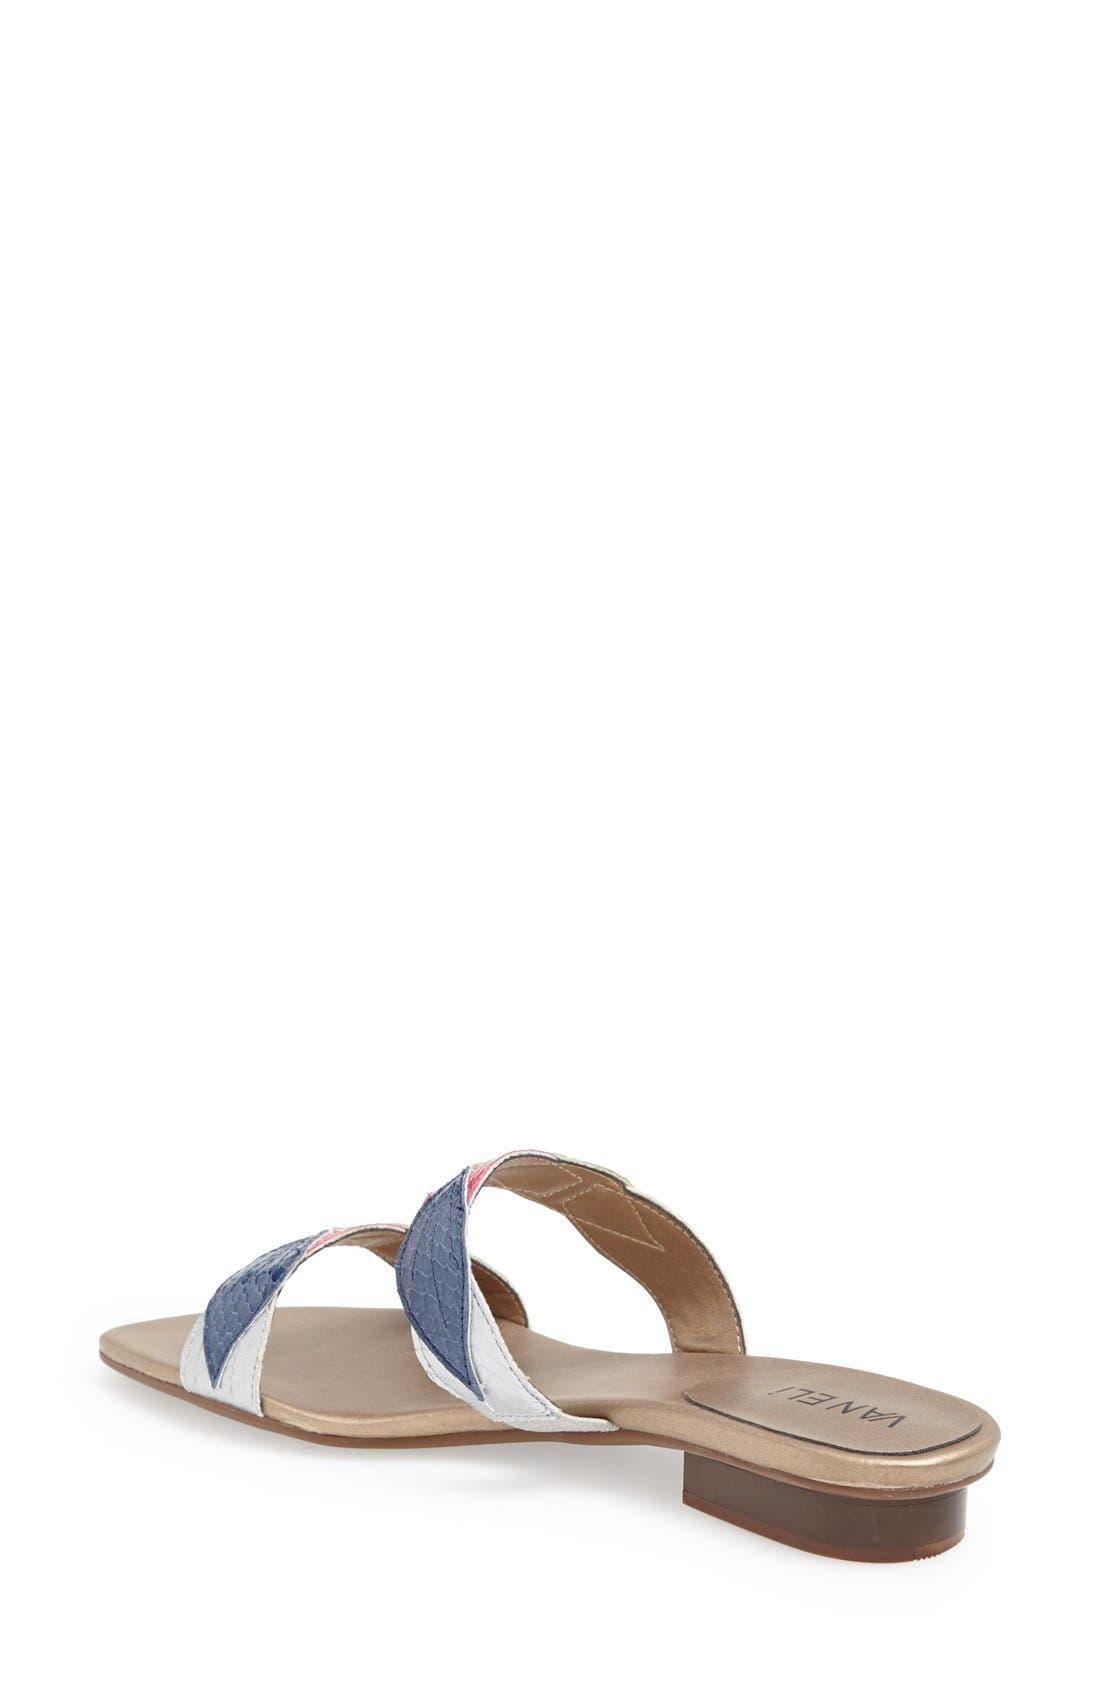 Alternate Image 2  - VANELi 'Blim' Slide Sandal (Women) (Special Purchase)